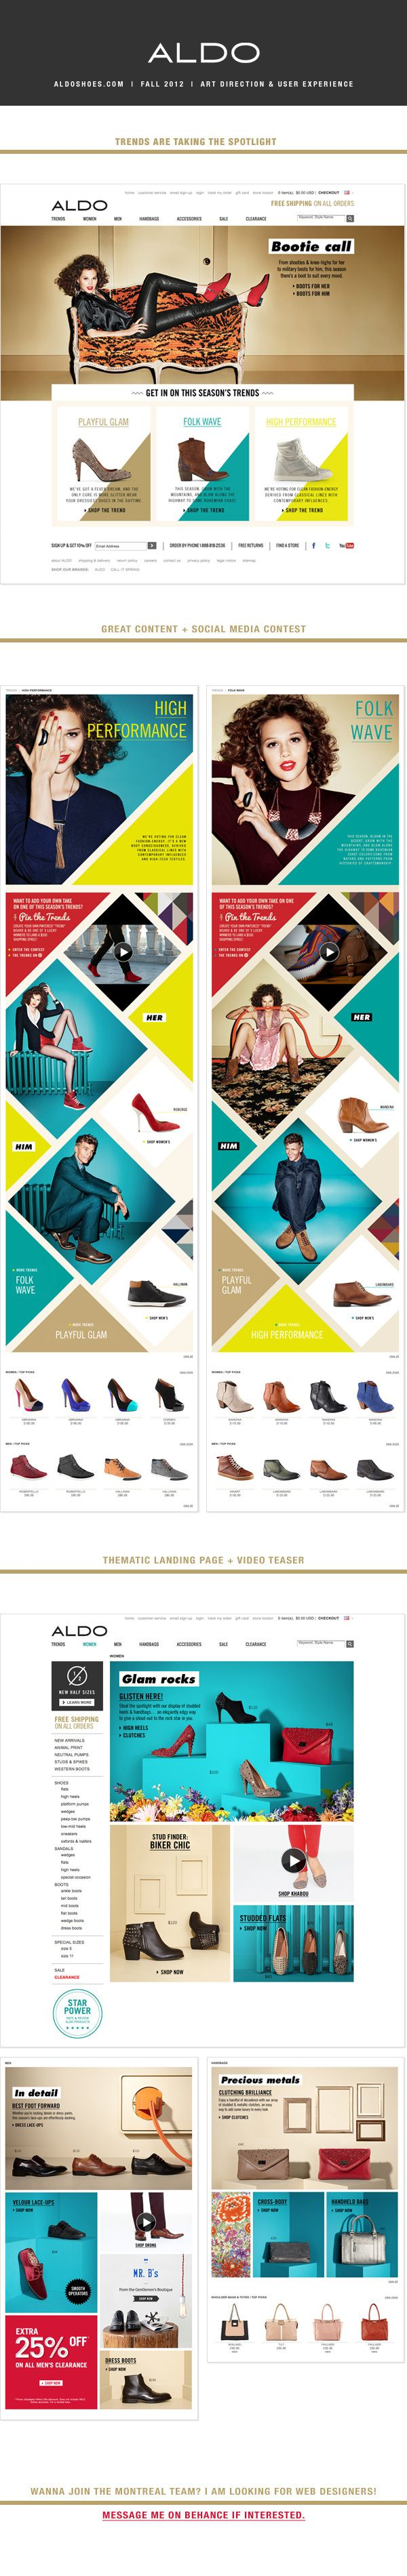 ALDO | FW12 | aldoshoes.com Fashion, User Interface Design, Web Design